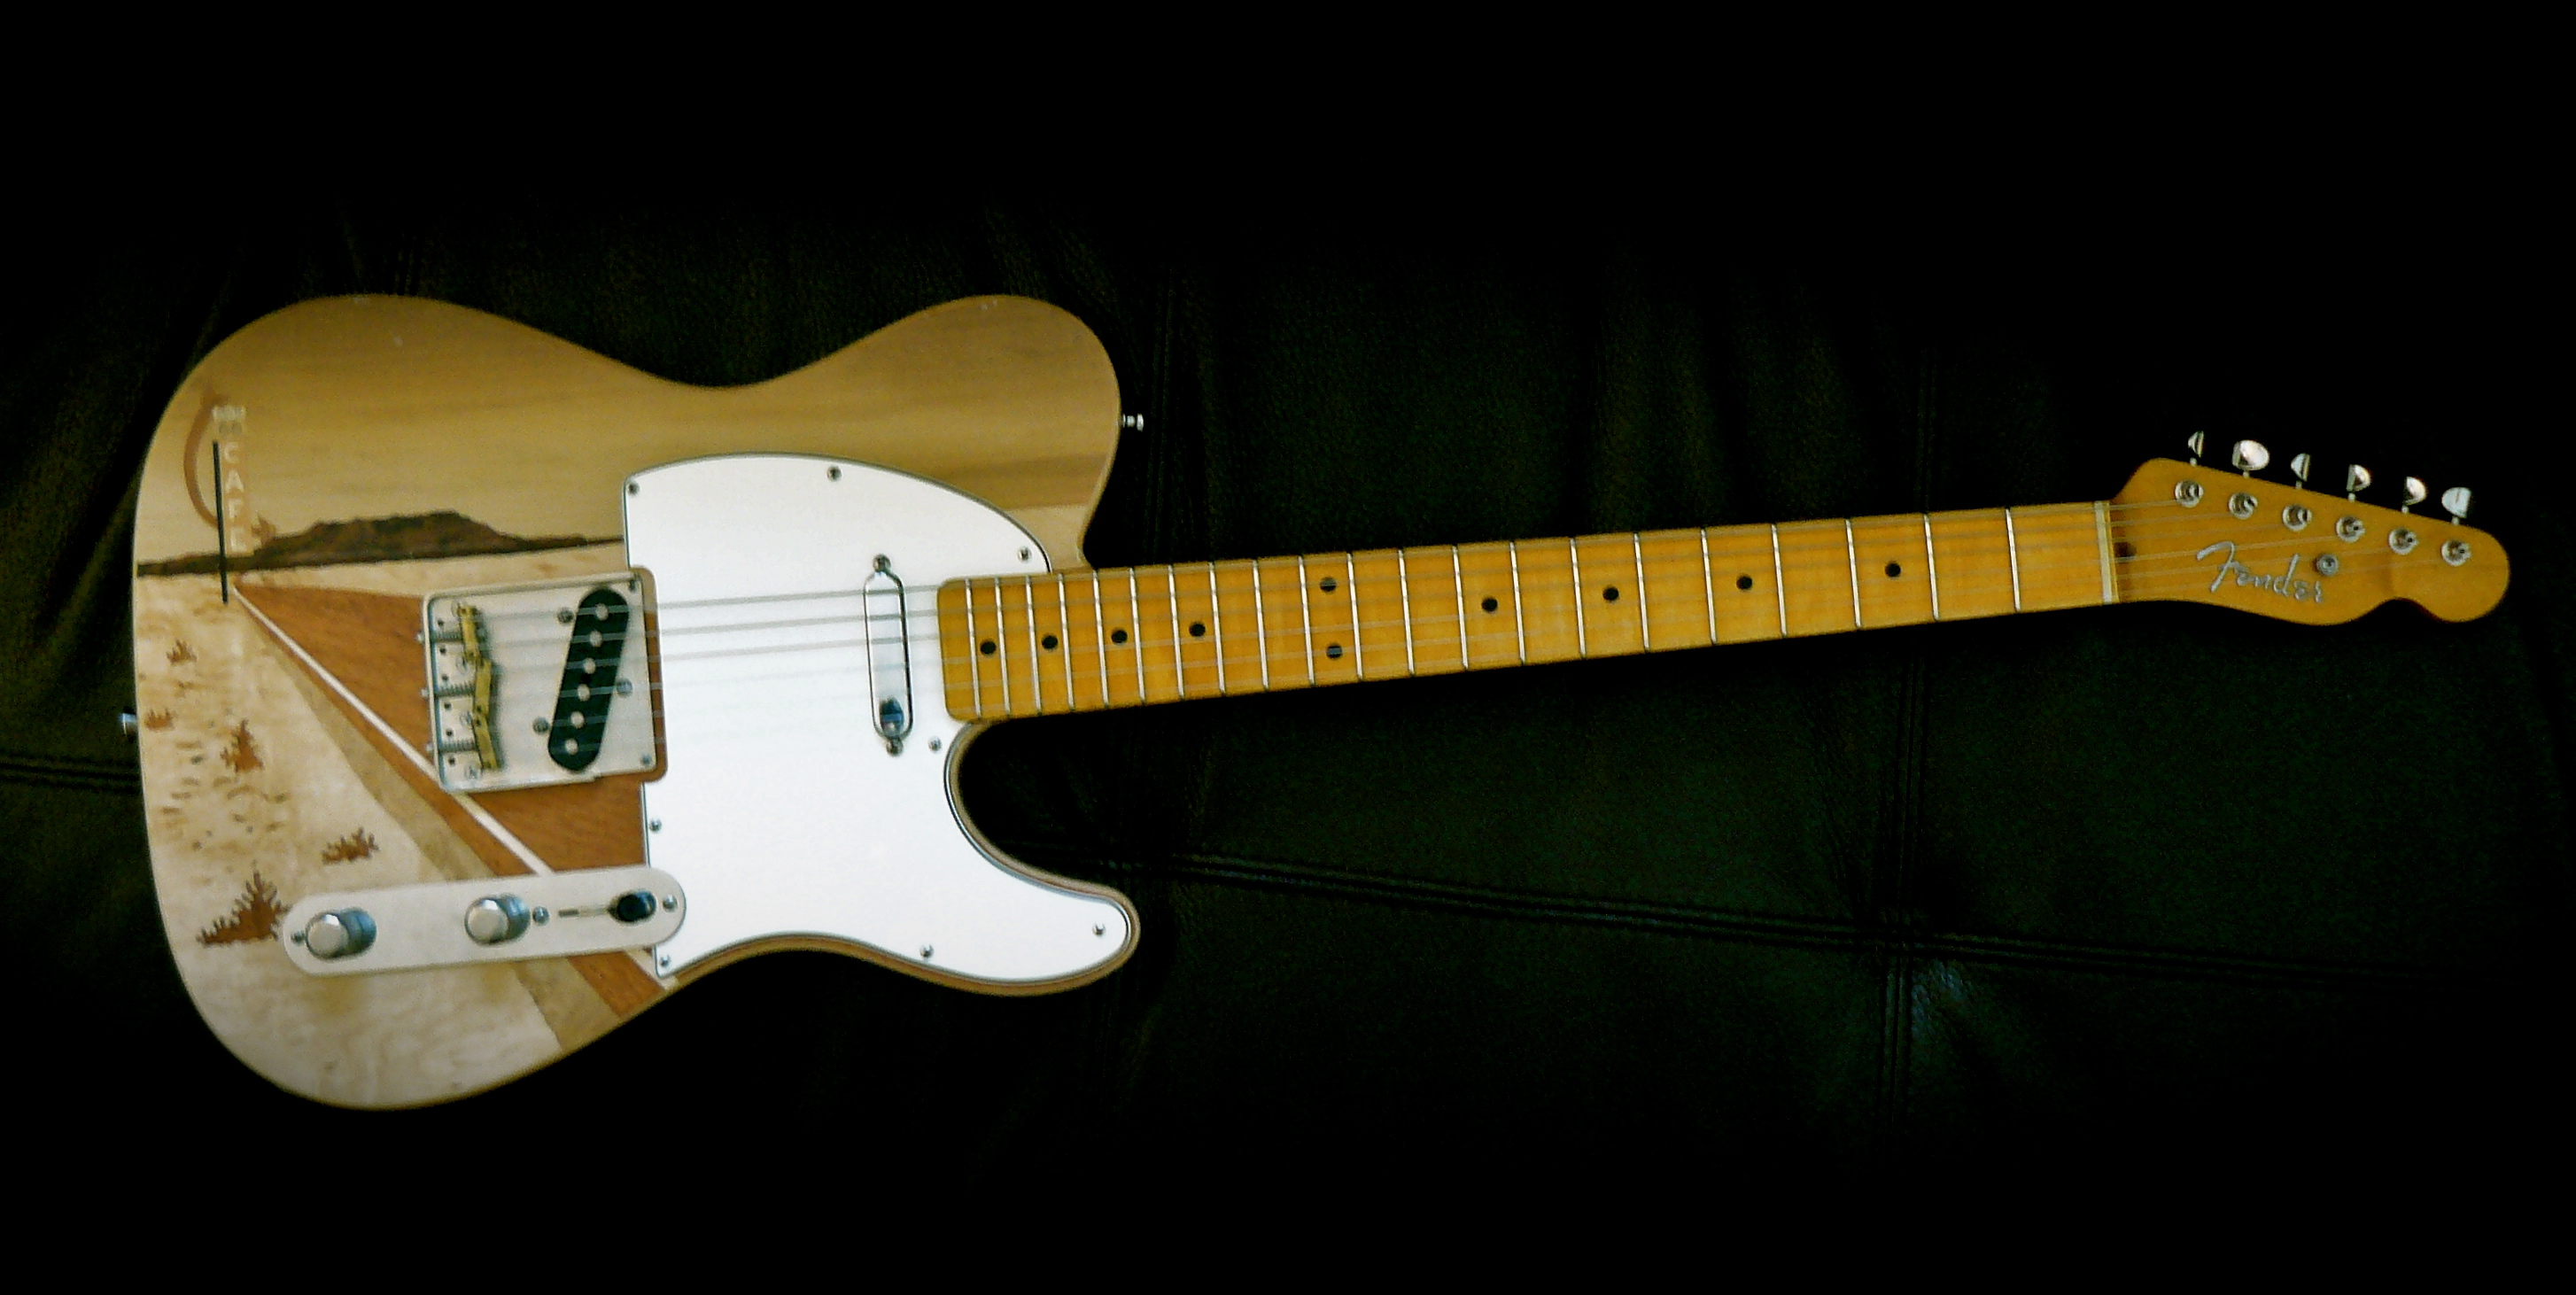 Telecaster route 66 allparts warmoth callaham